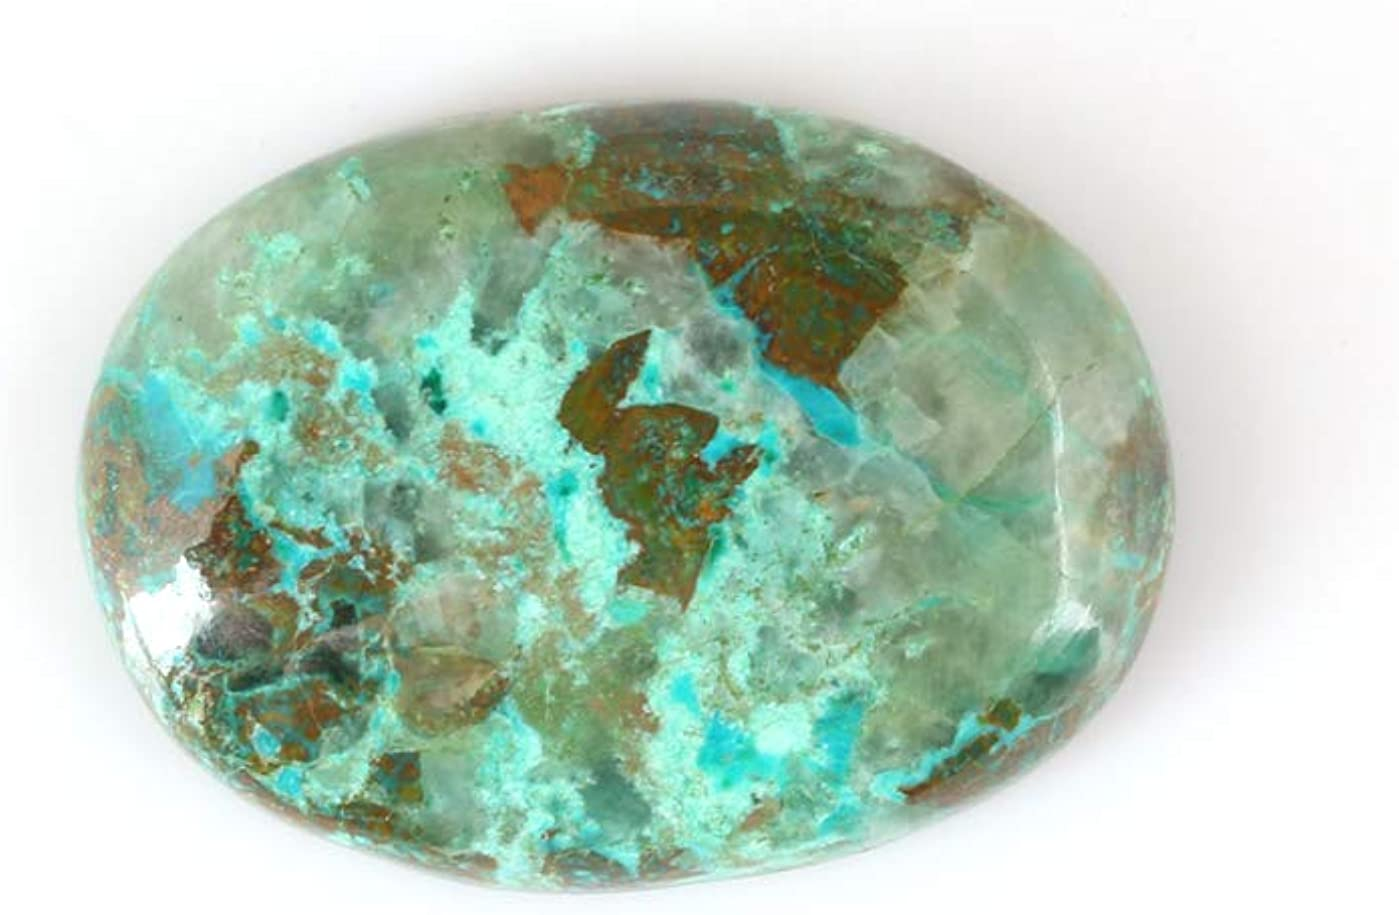 DVG Sale 29.20 Quantity limited excellence Carats 100% Chrysocolla Beautiful Natural Oval Ca